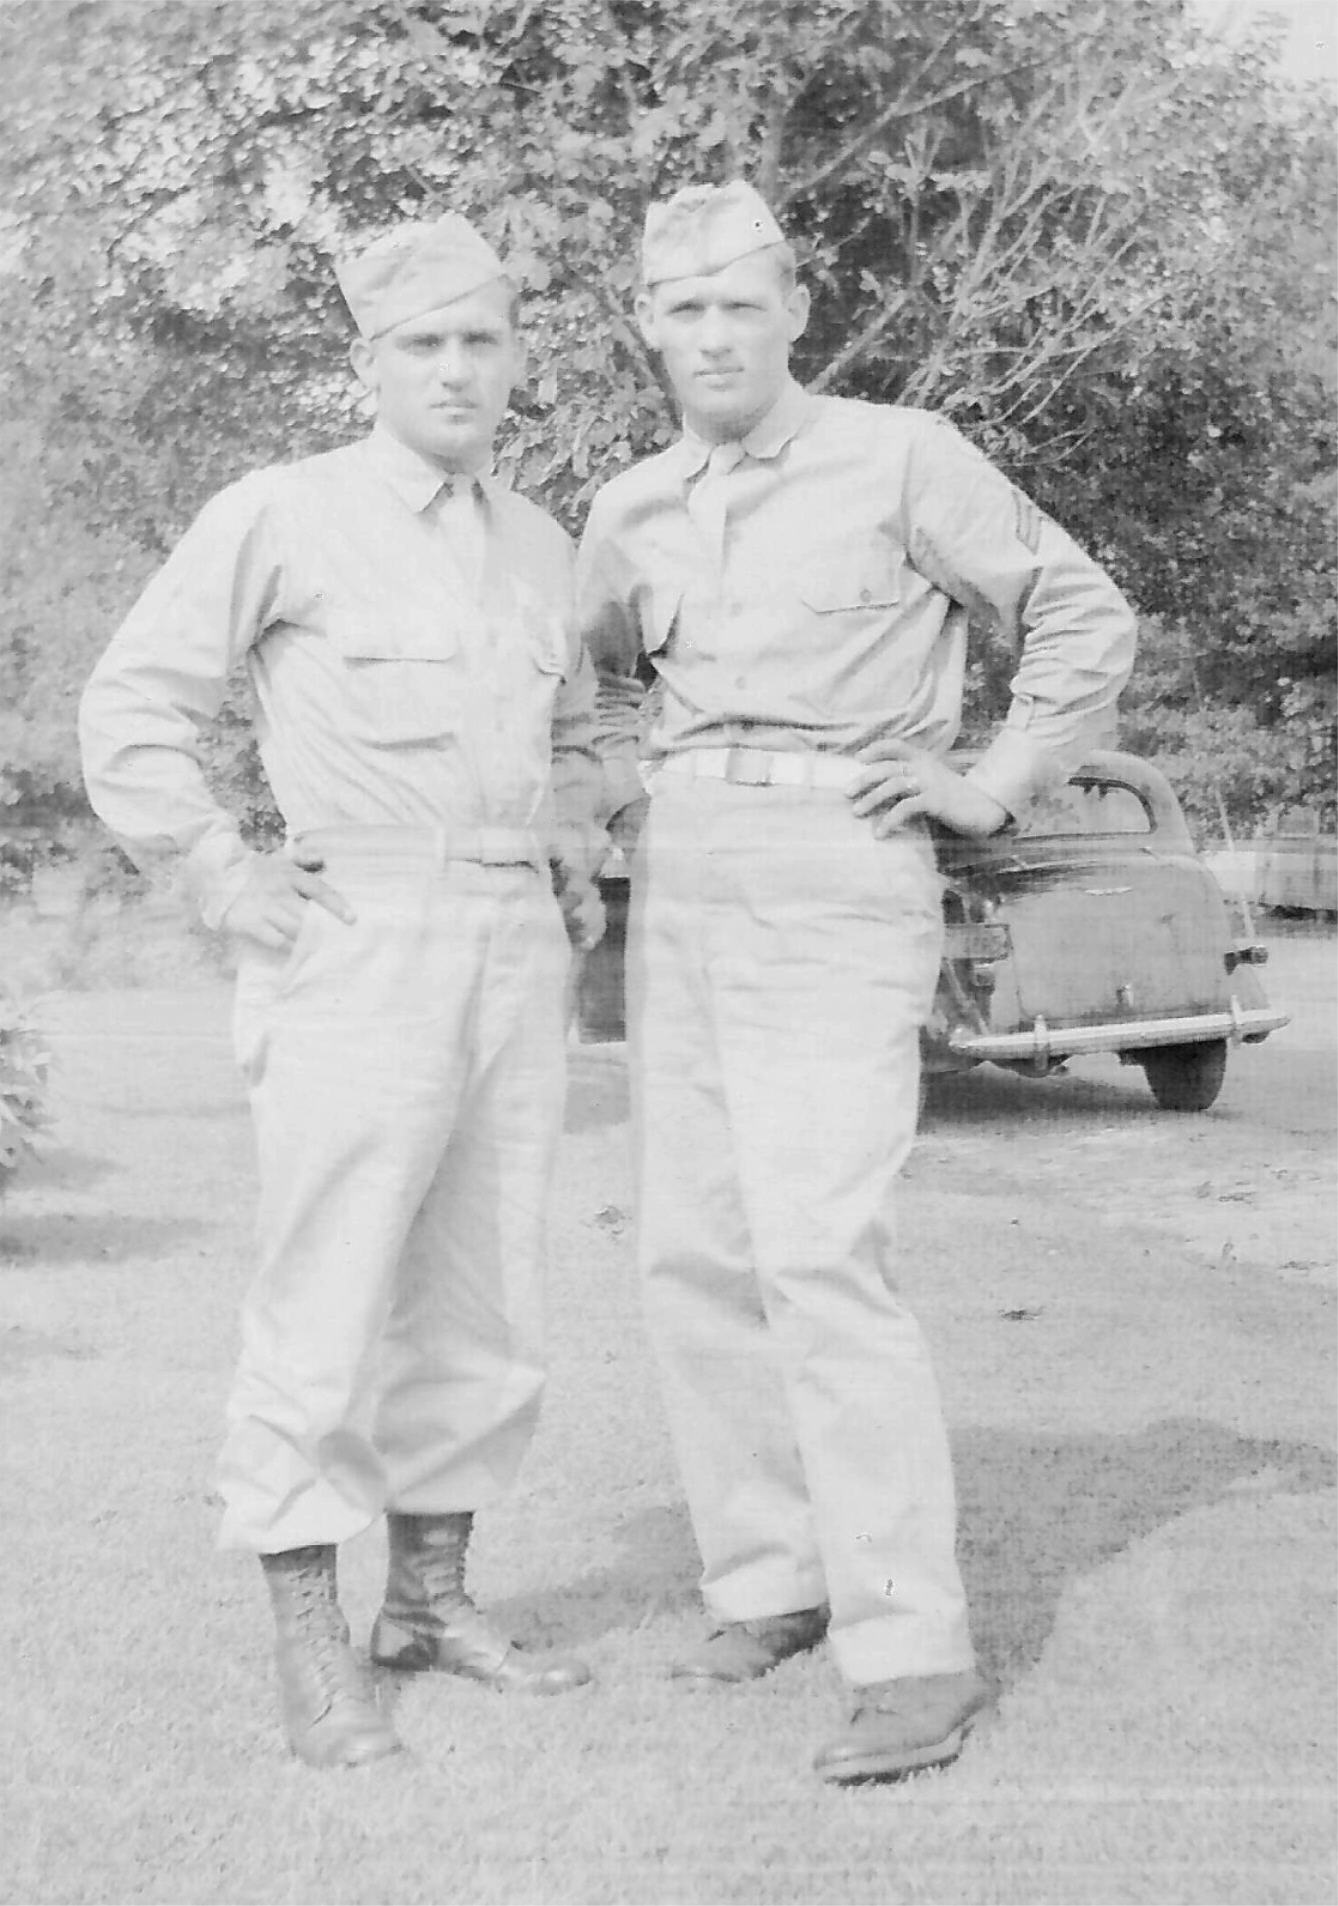 Frank and John Gabersek 1943